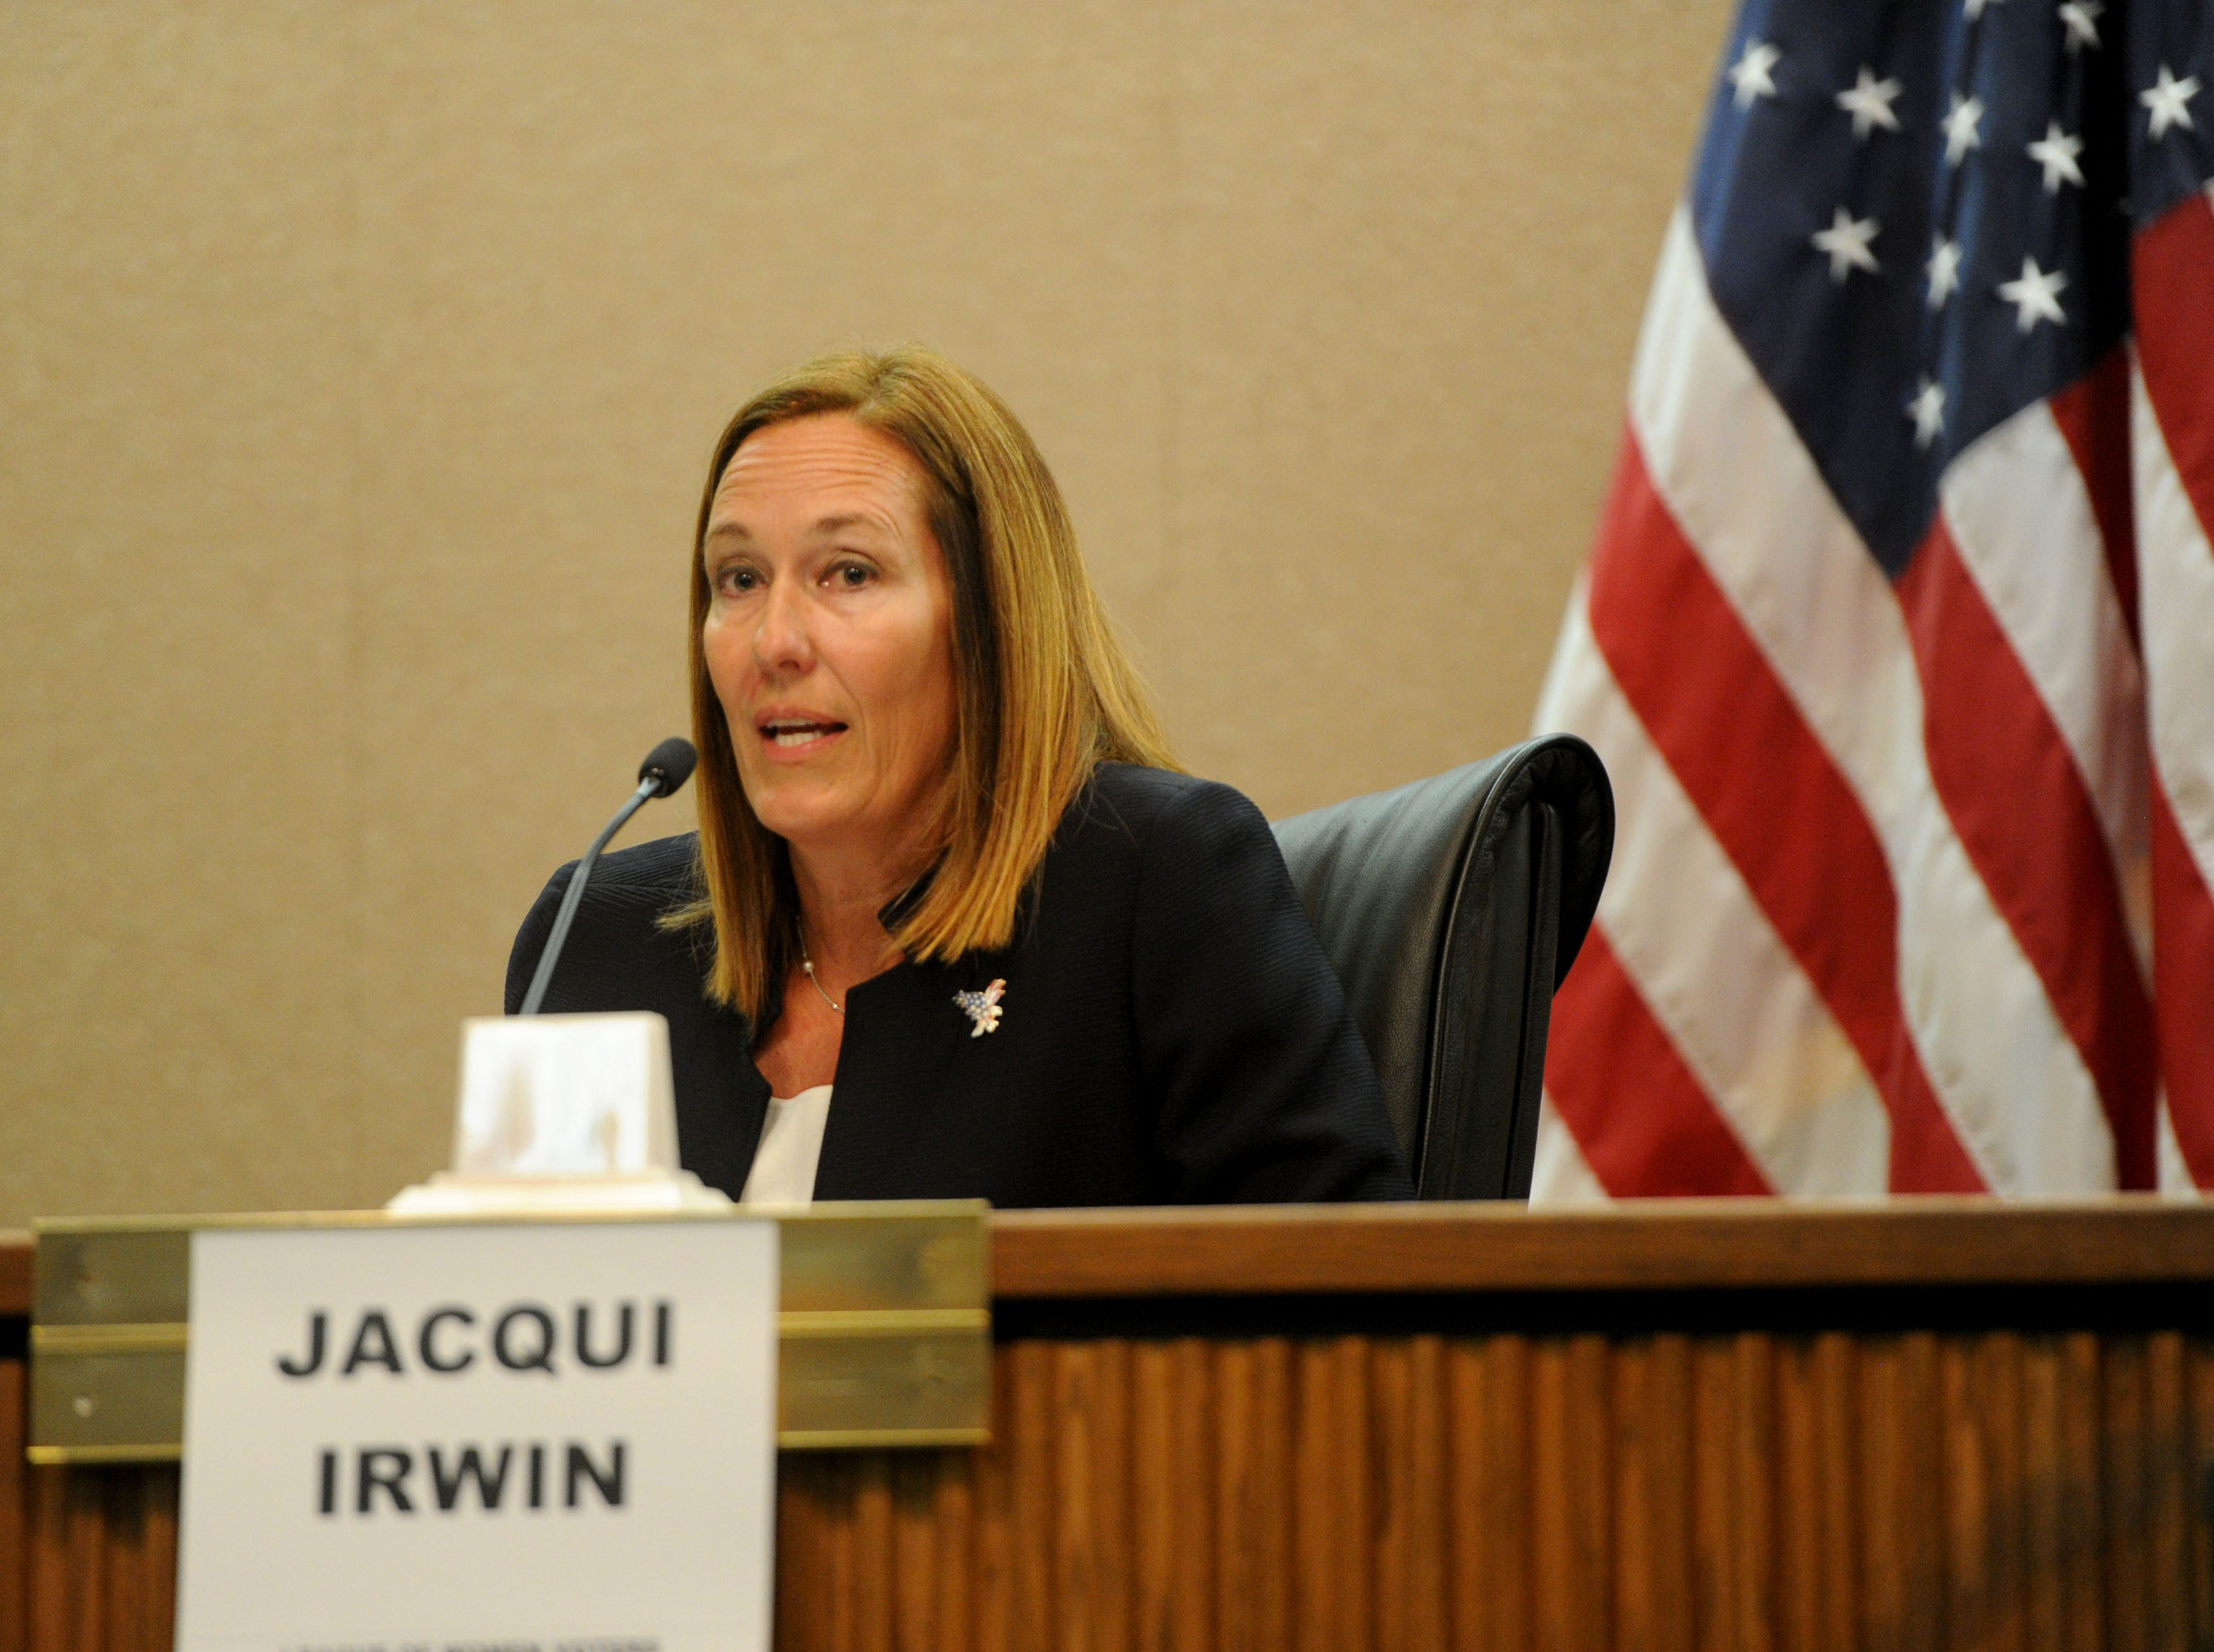 Assembly member Jacqui Irwin, D-Thousand Oaks, participates in a forum at Camarillo City Hall on Tuesday night. The incumbent is one of two candidates for the 44th Assembly District.